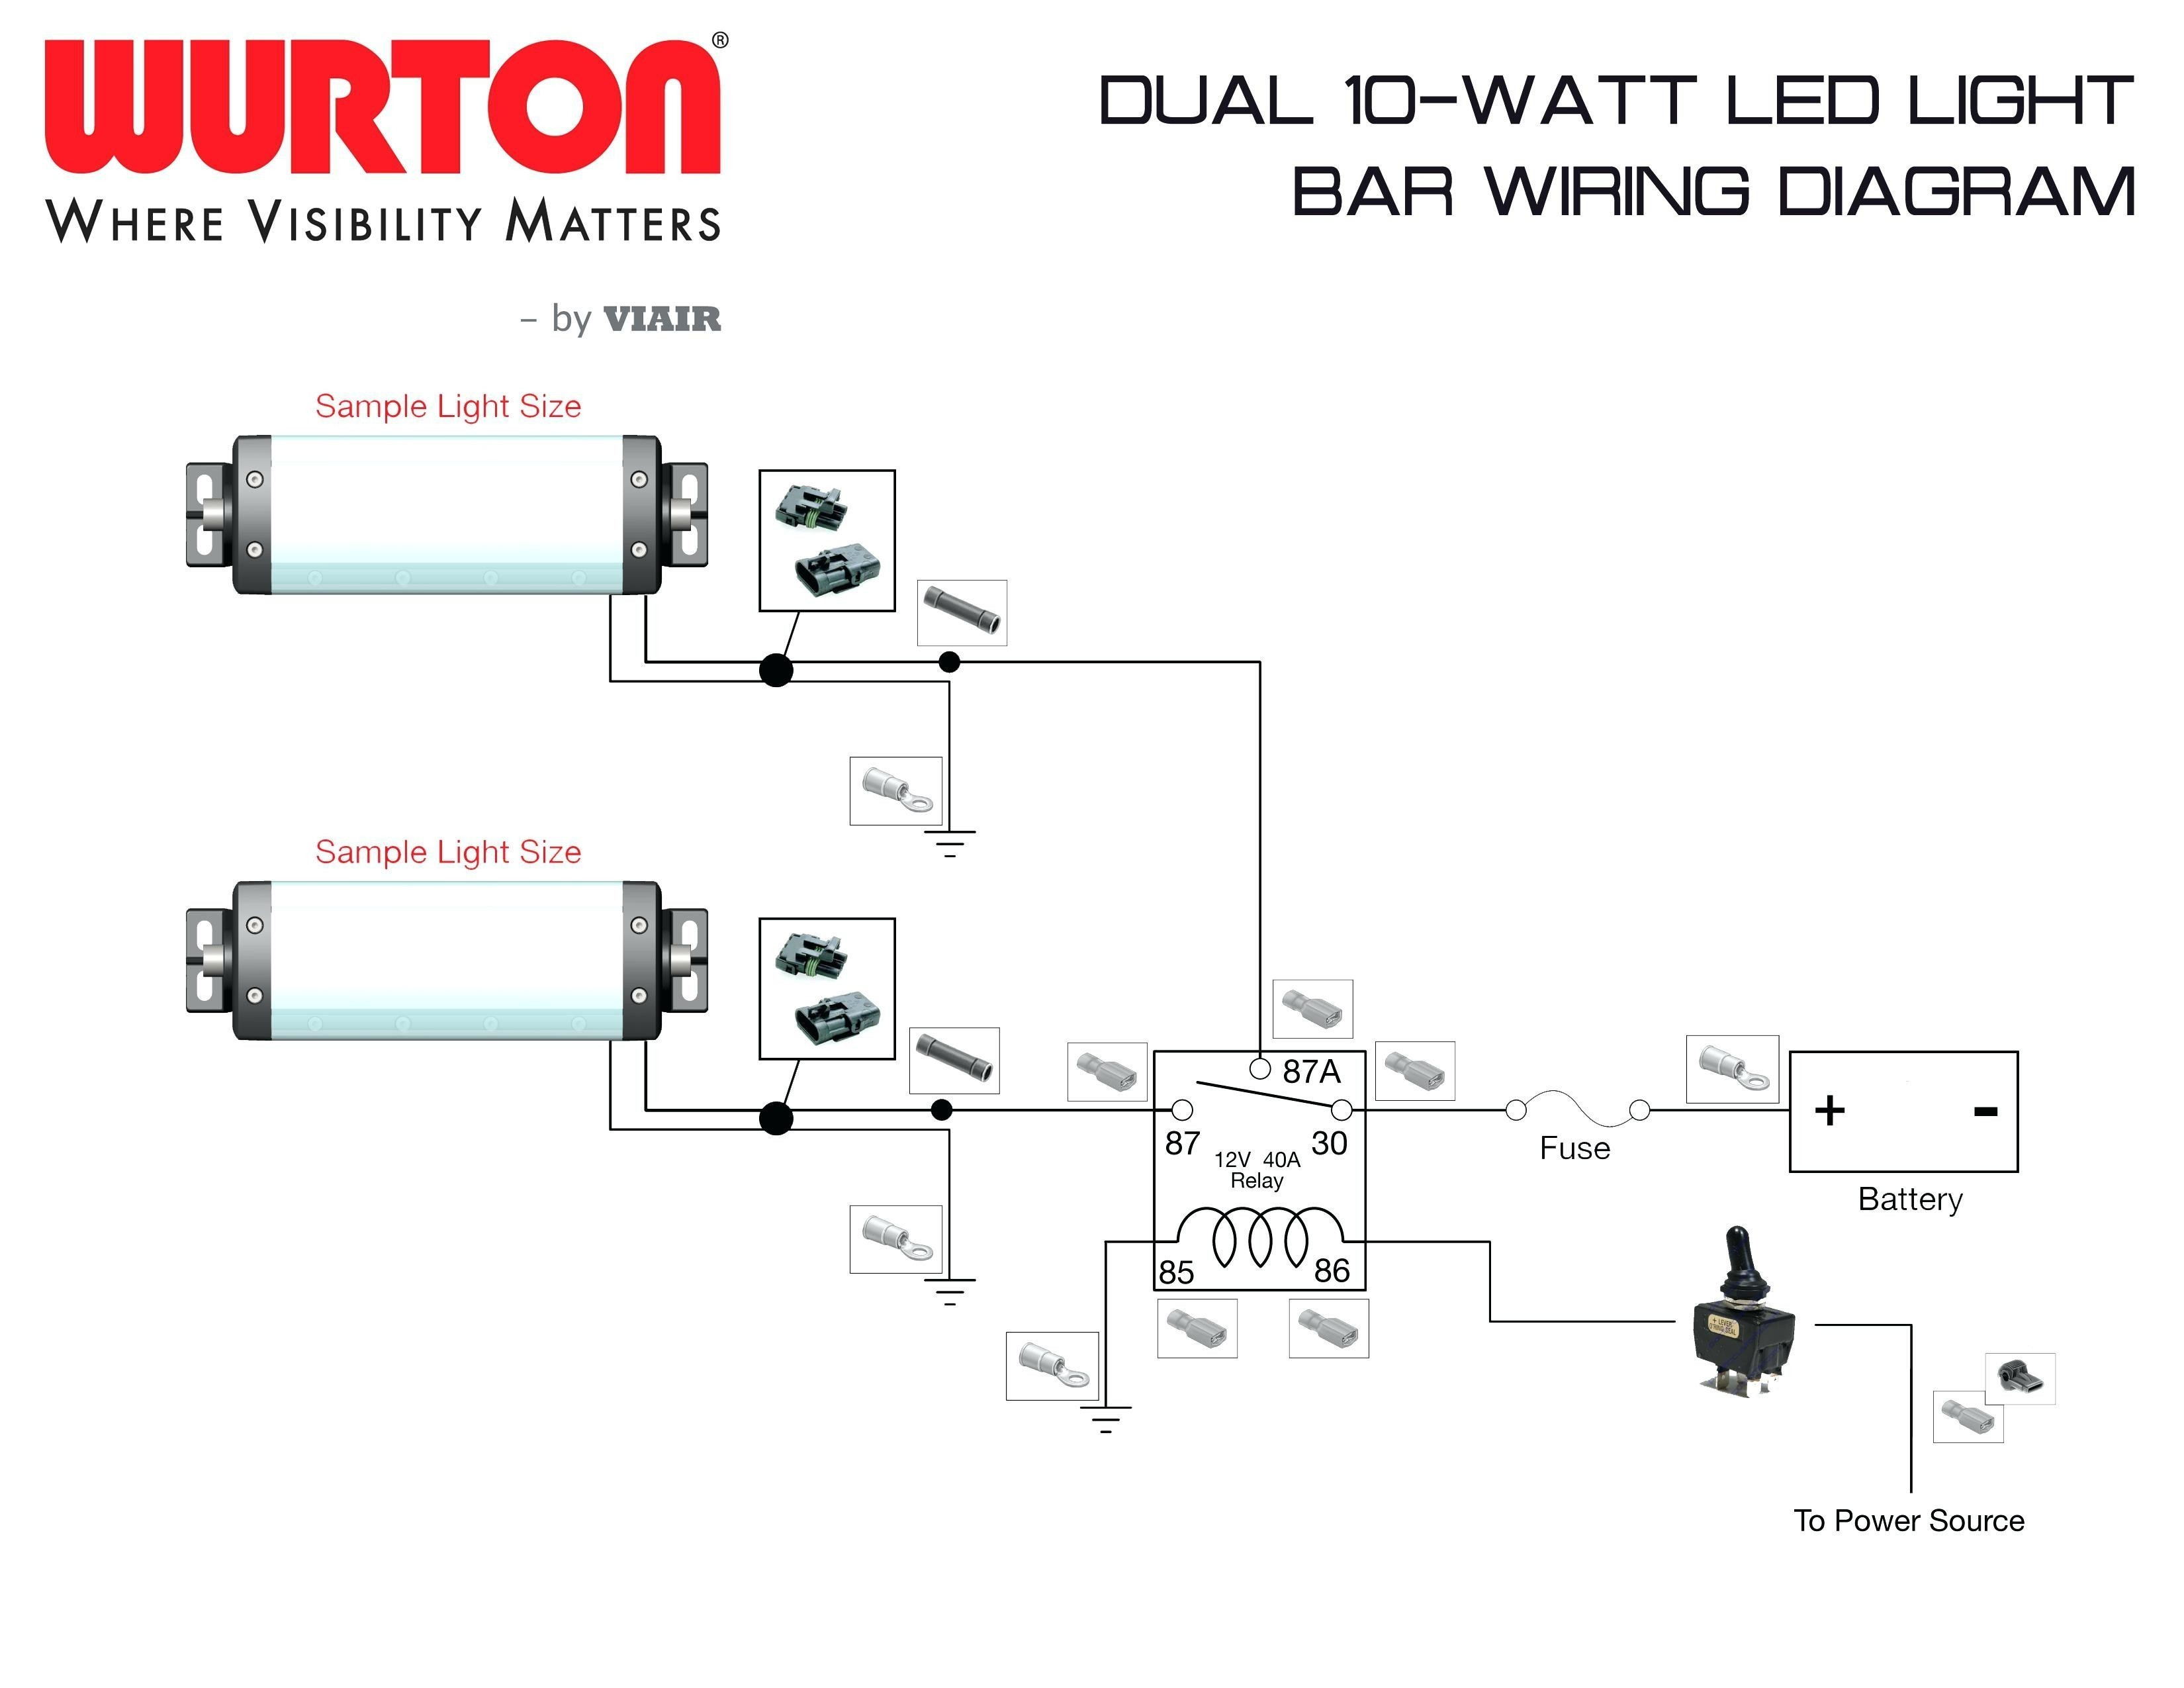 Wiring Diagrams For 6 Recessed Lighting In Series Inspirationa Wiring Diagram For Multiple Pot Lights New Wiring Lights In Series